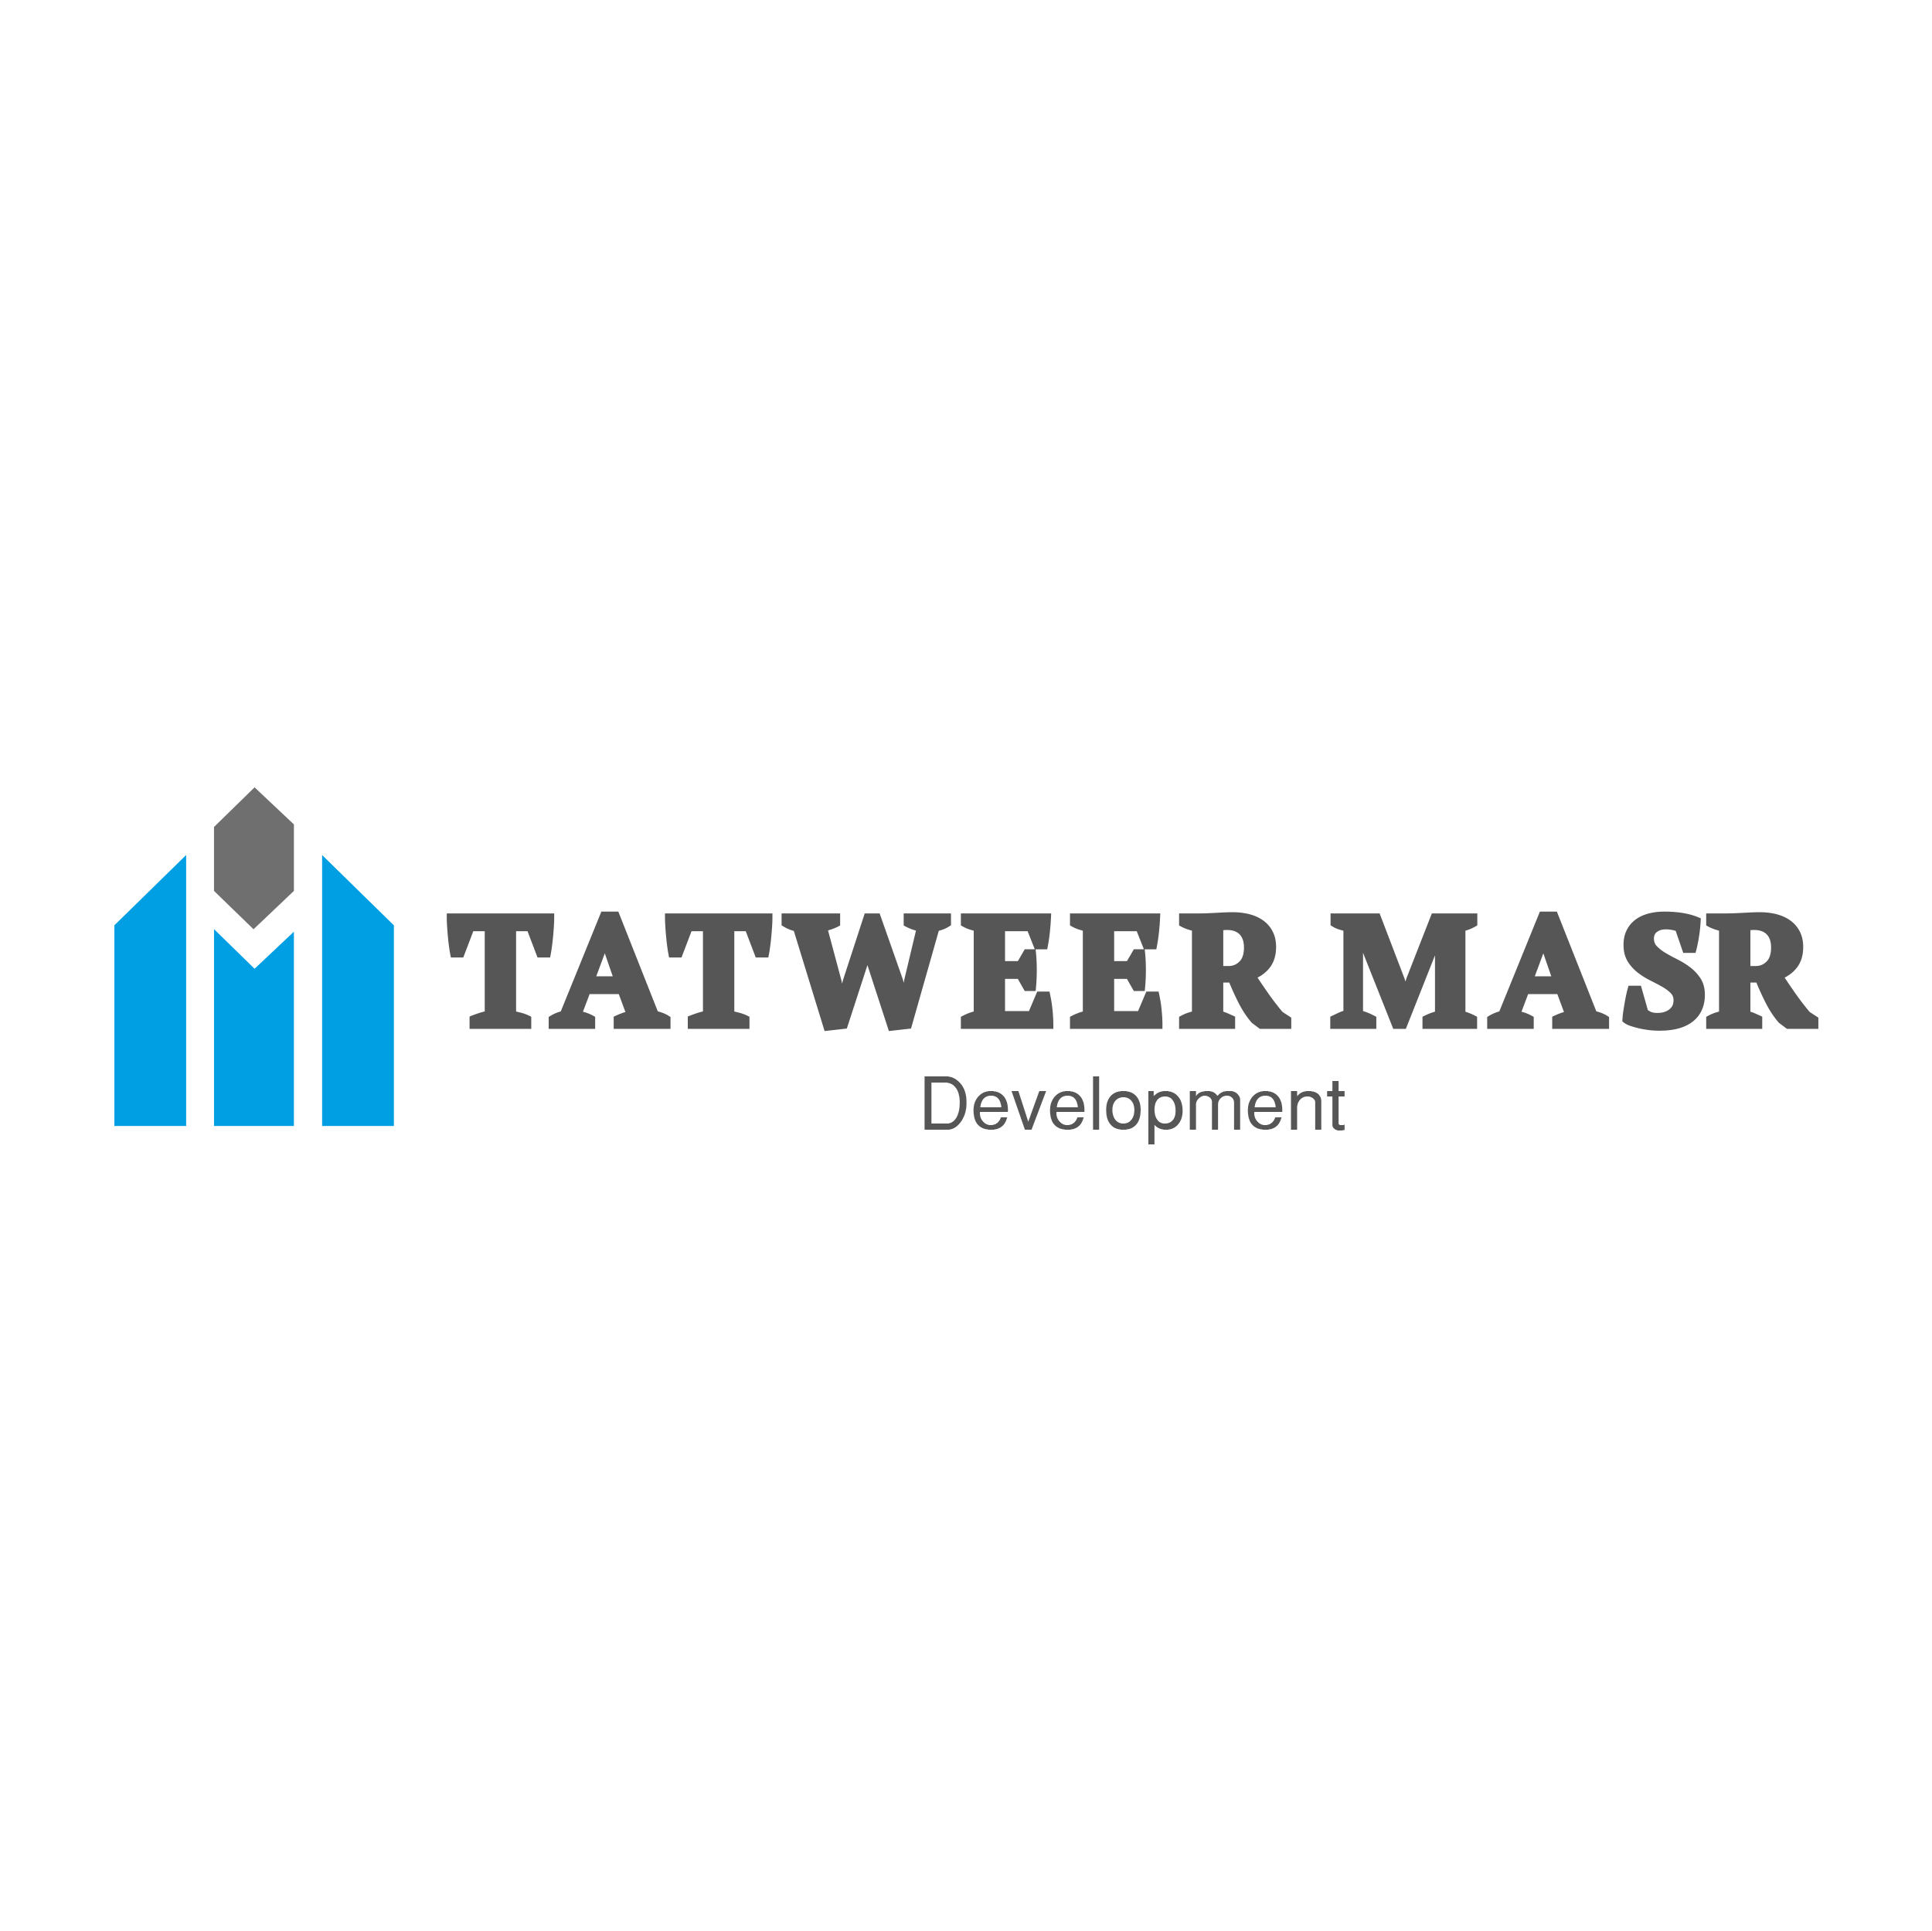 Tatweer Masr Development 's logo